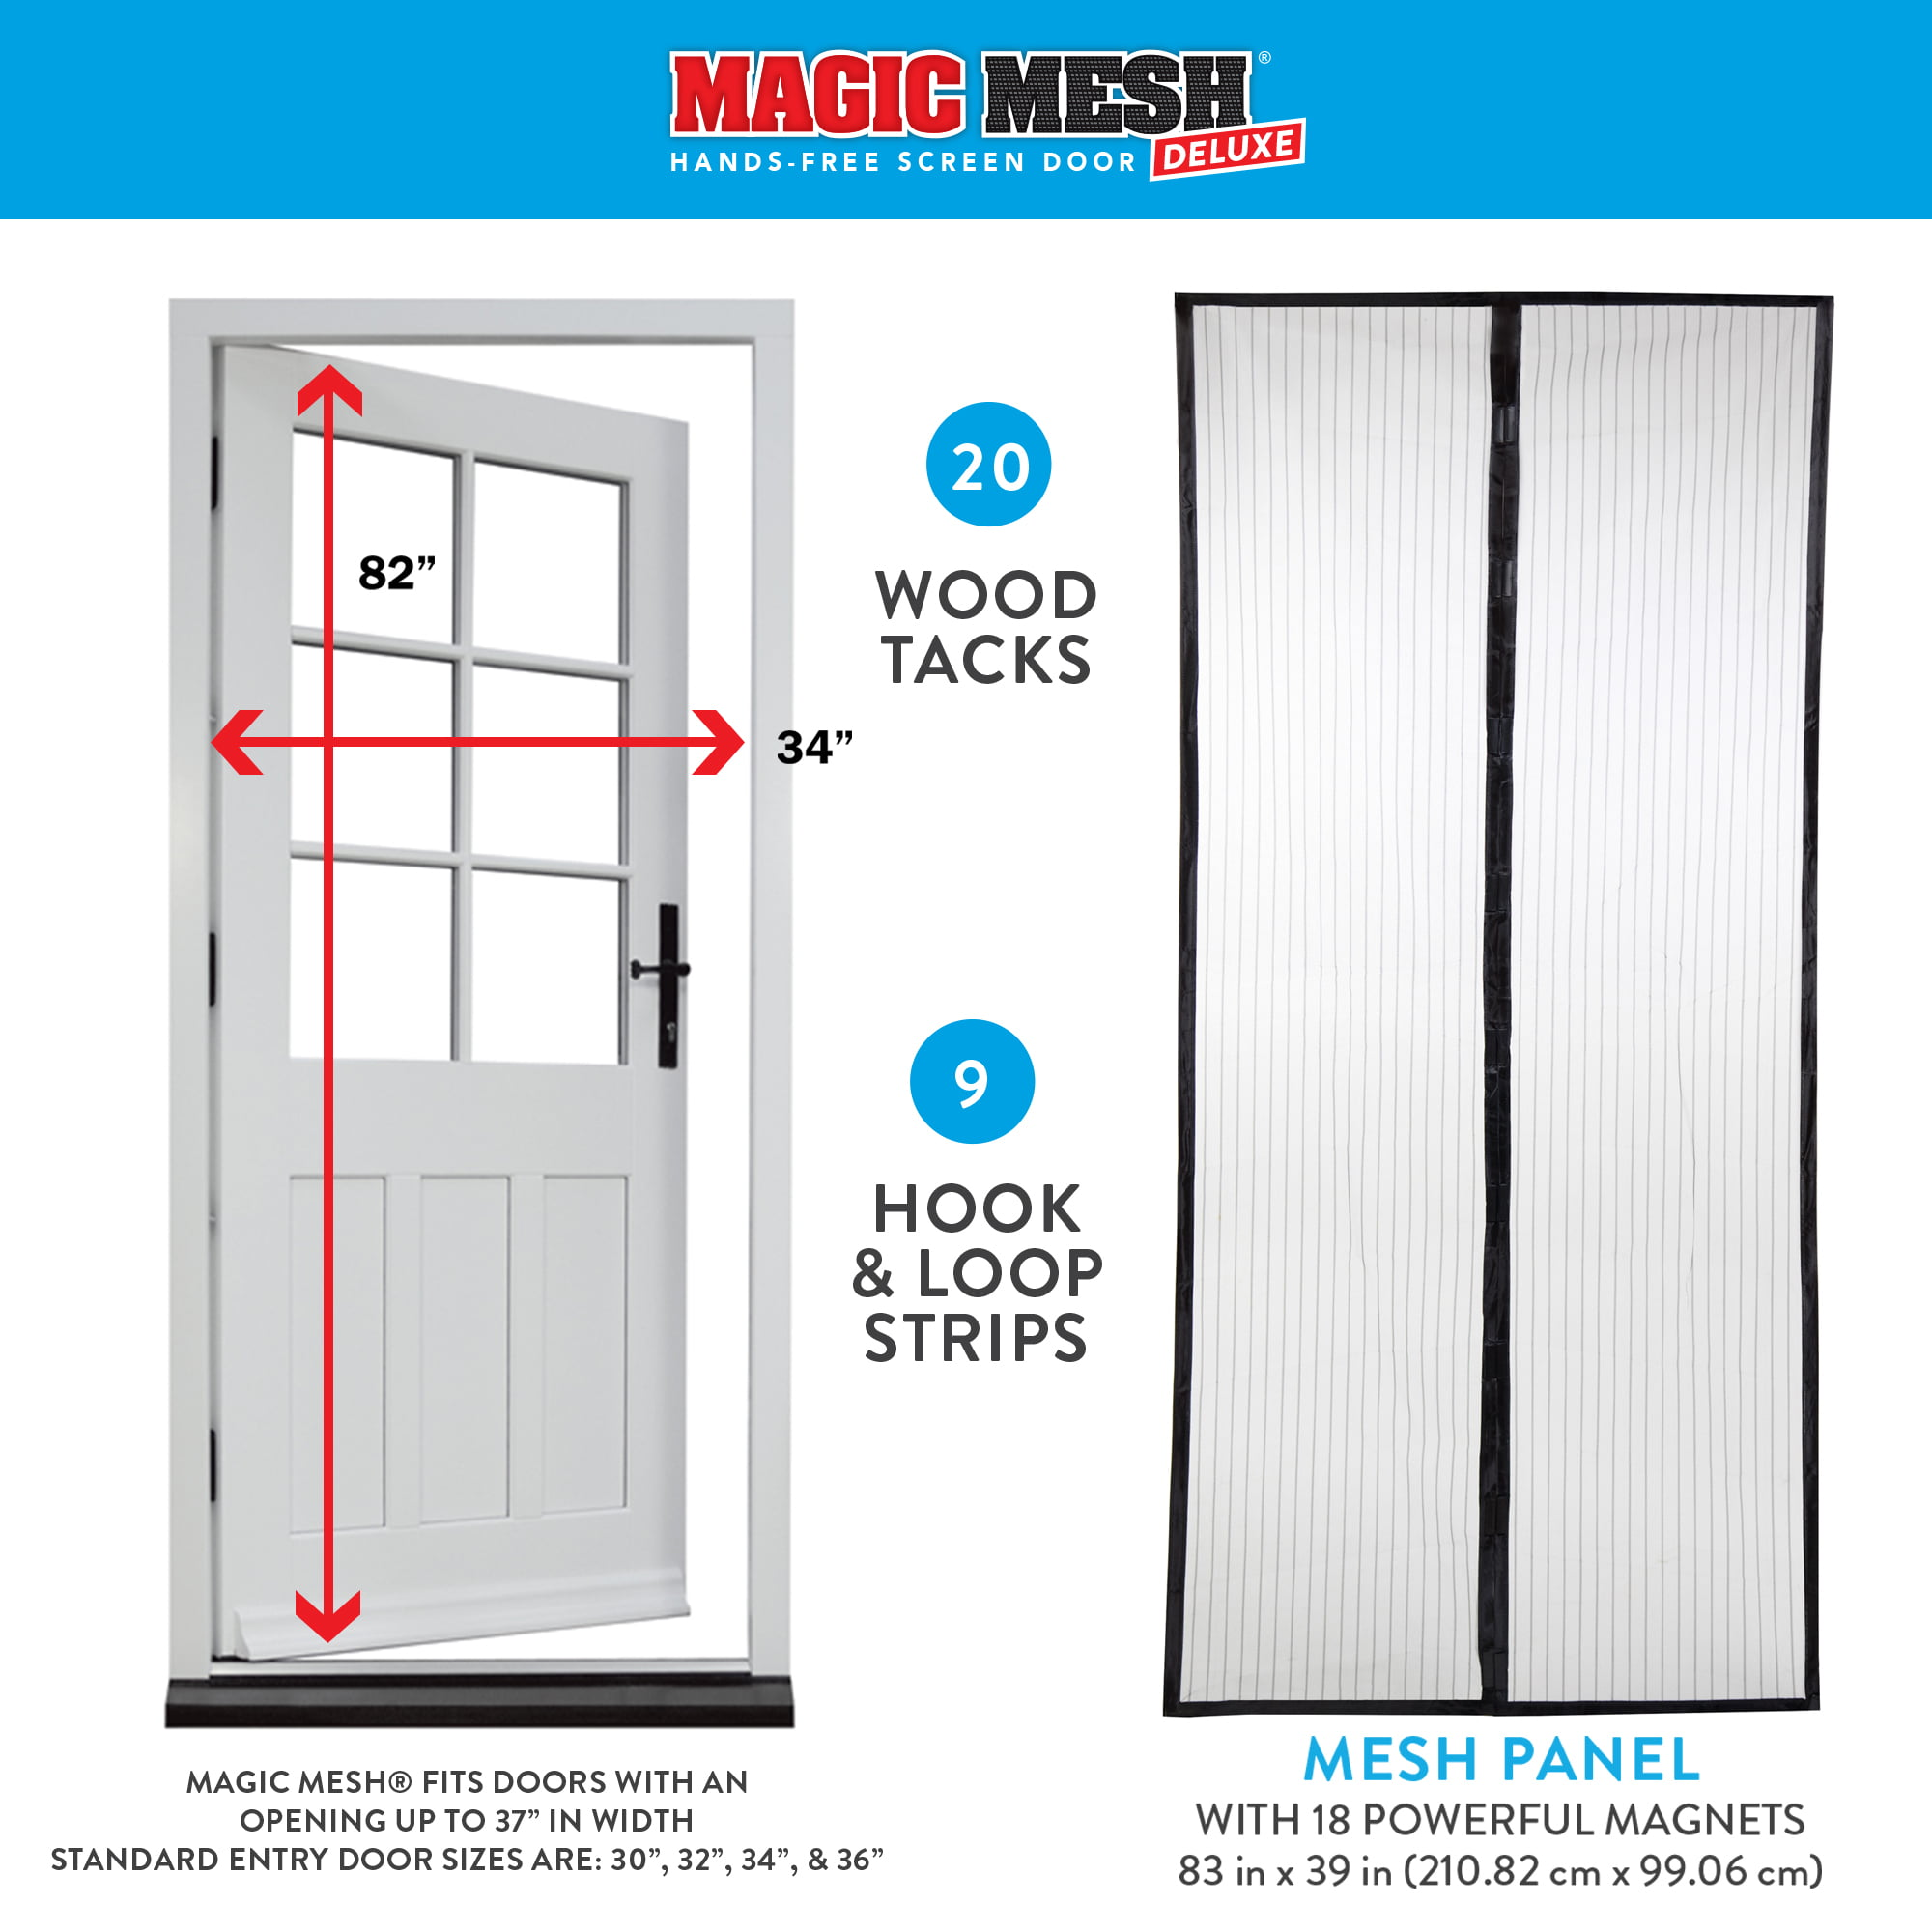 Magic Mesh Deluxe Magnetic Hands Free Screen Door Cover As Seen on TV